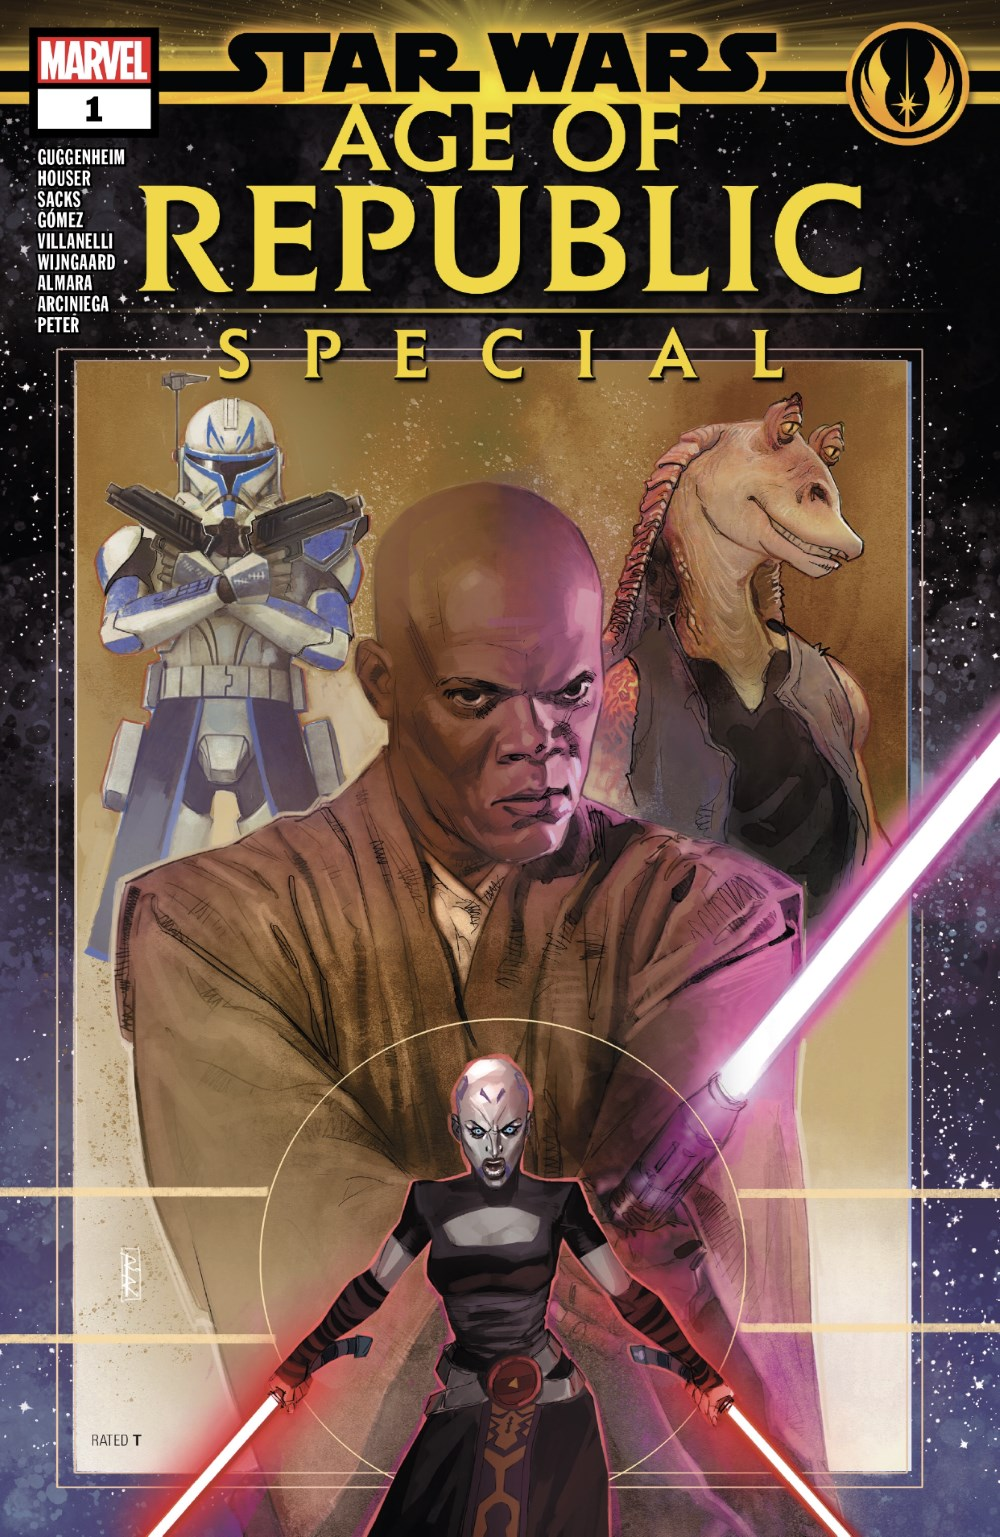 Star Wars: Age of Republic - Special #1 Cover